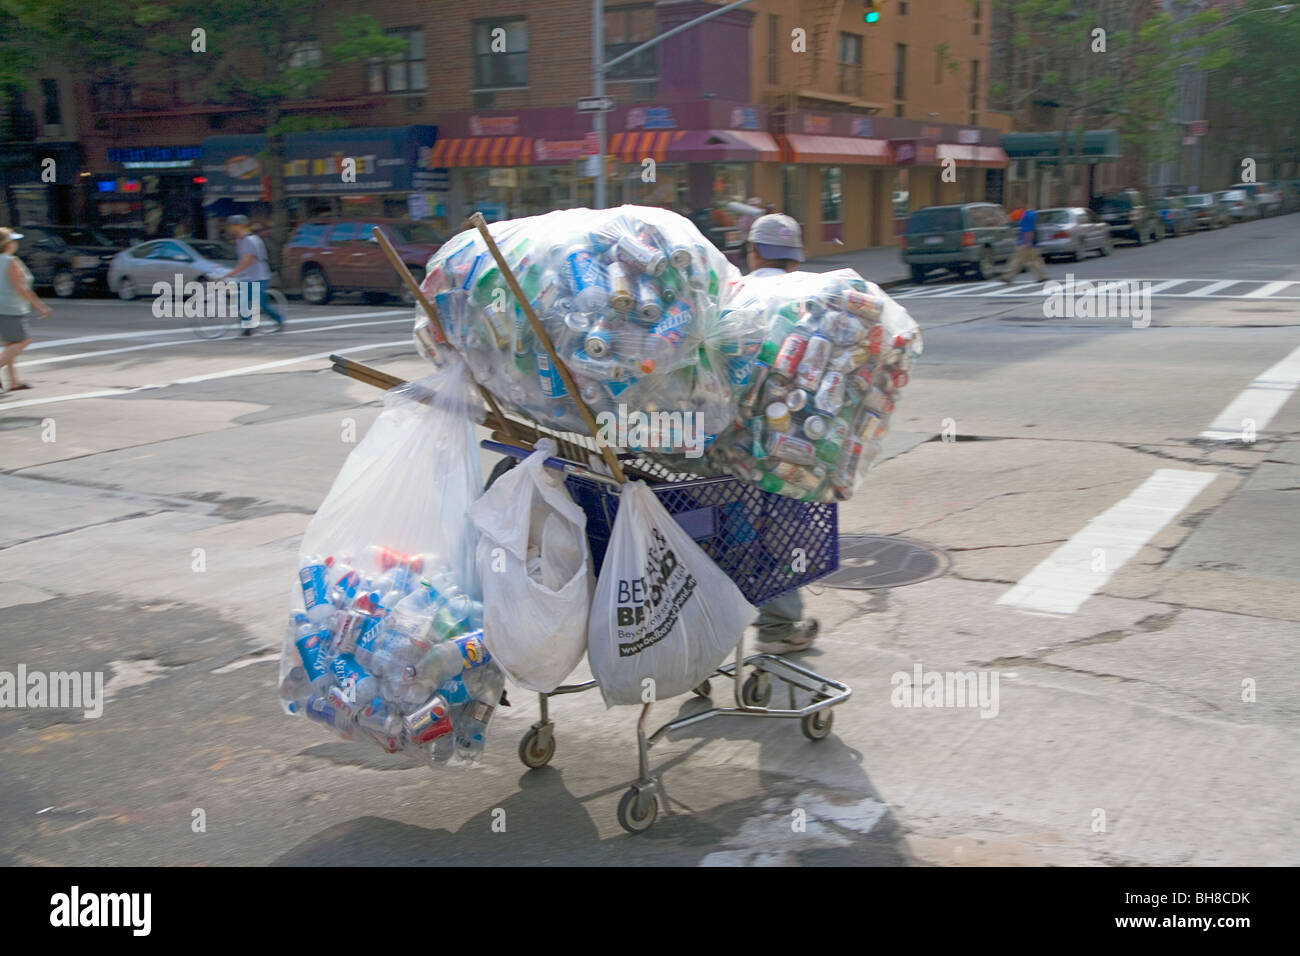 Man collects aluminum cans in grocery basket in upper Eastside of New York - Stock Image